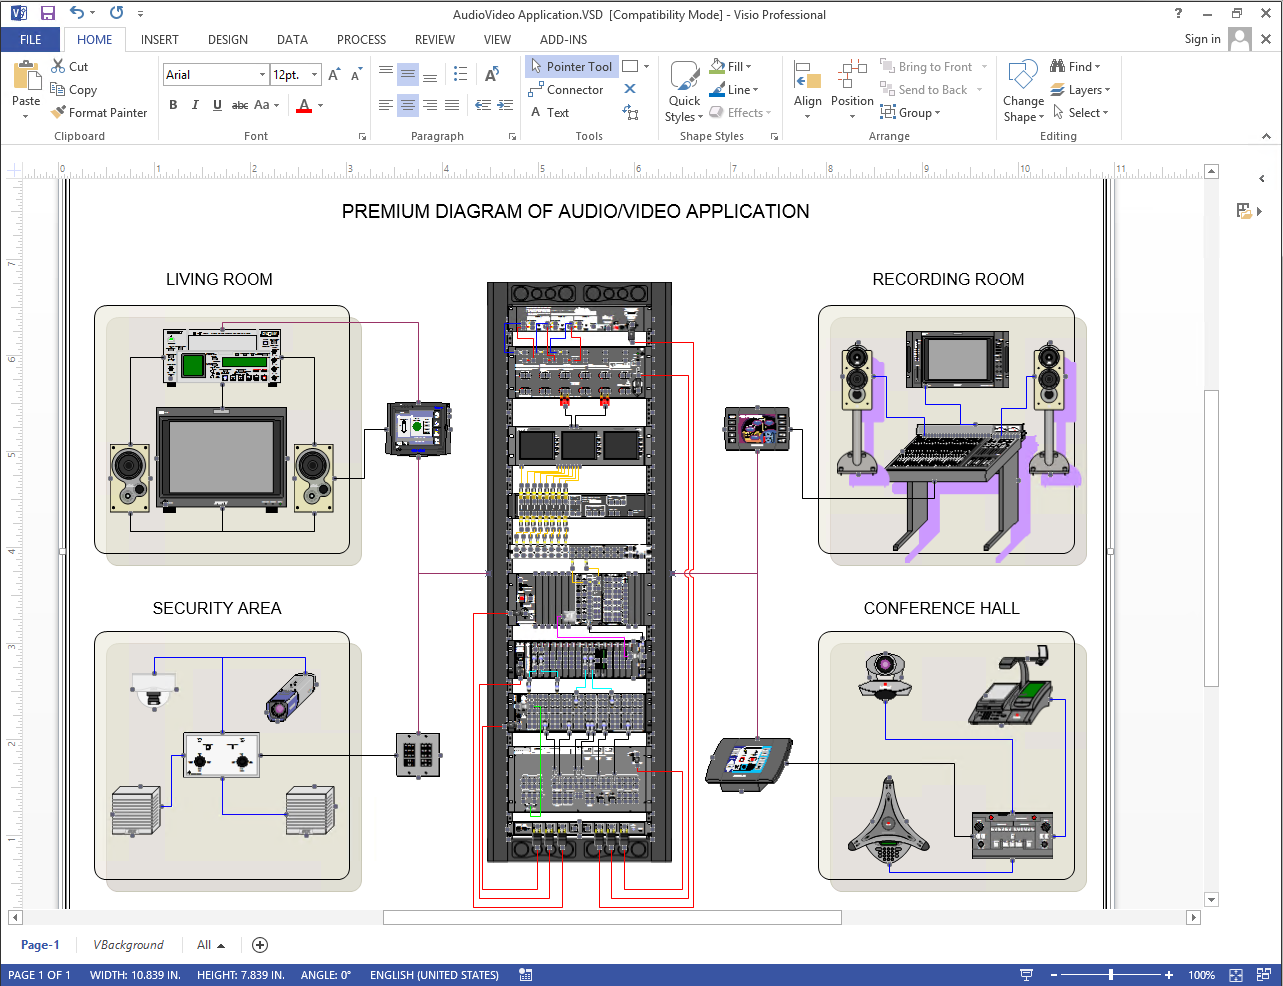 Visio stencil diagram collection of wiring diagram netzoom visio stencils rh visiostencils net visio database model diagram stencil download visio stencil sequence diagram ccuart